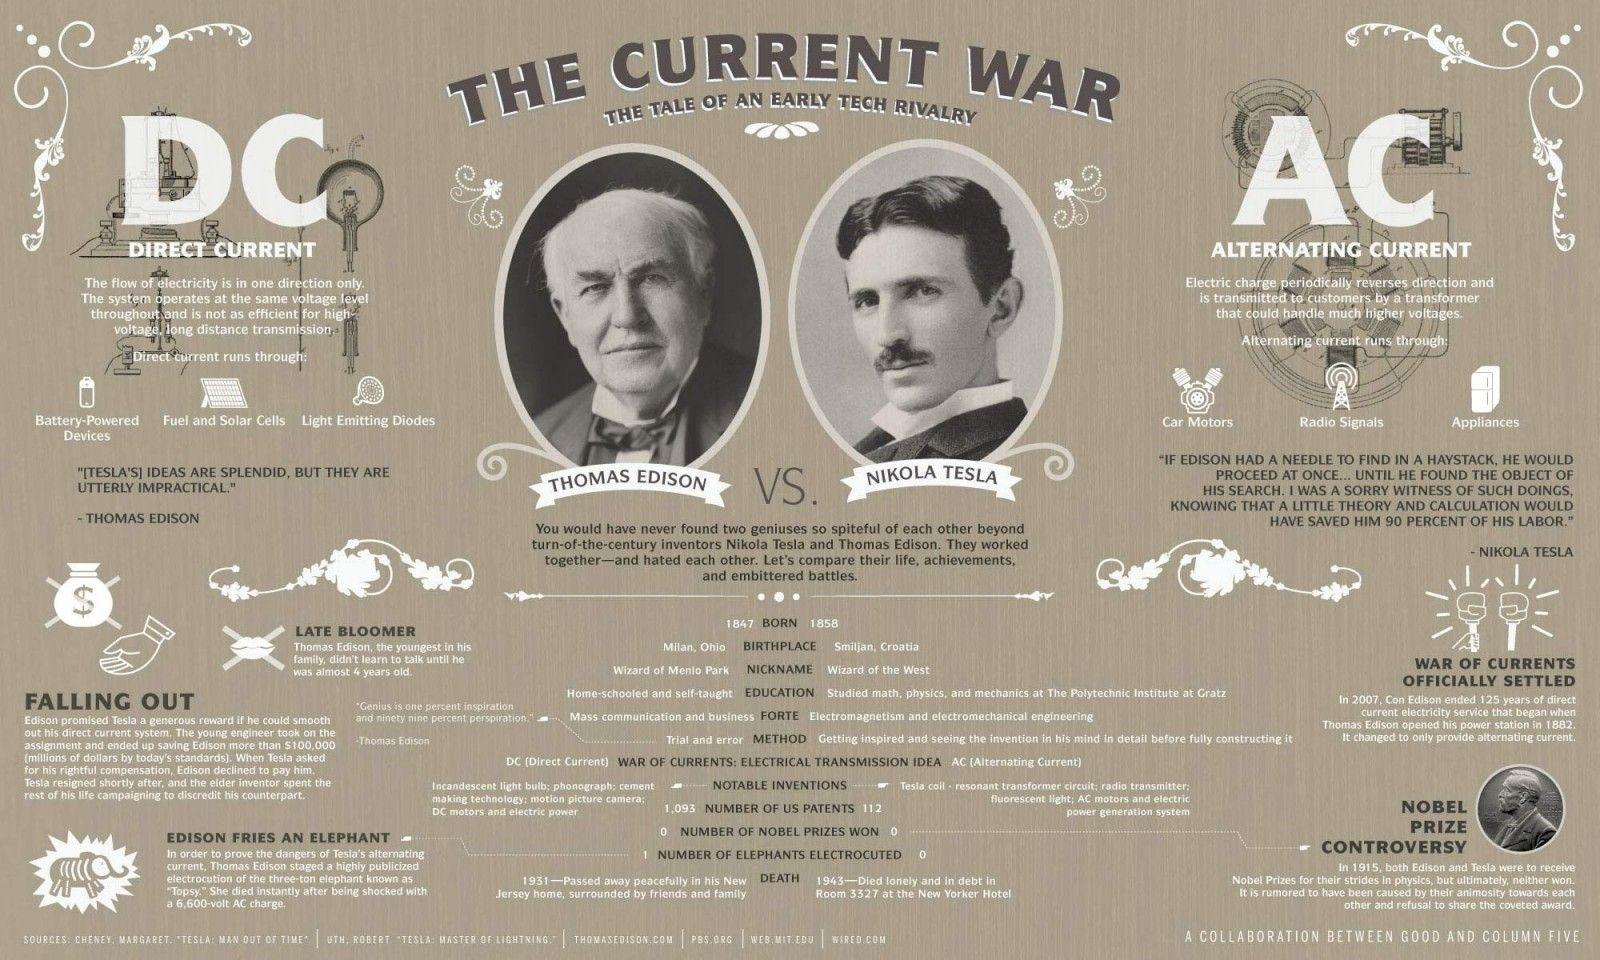 Wallpapers : men, quote, simple background, war, history, Nikola